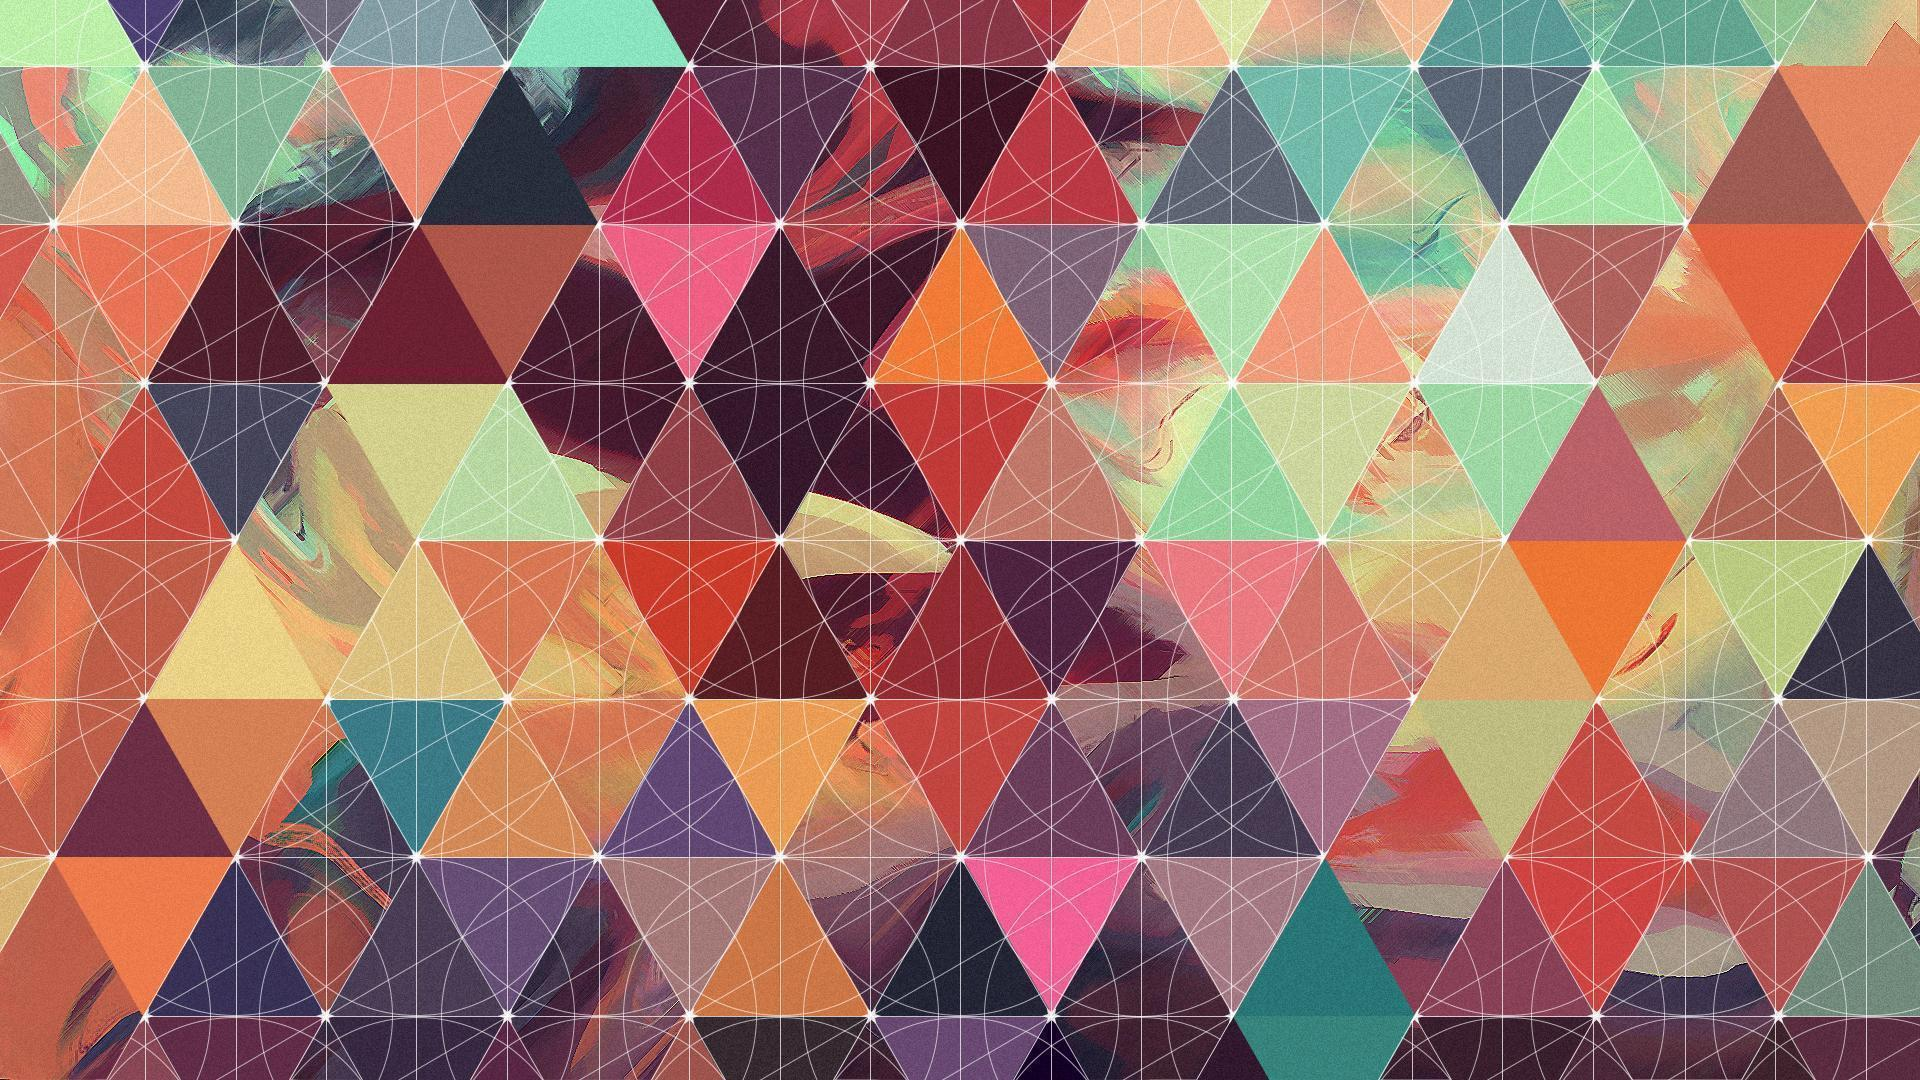 Amazing High Quality Geometric Pictures & Backgrounds Collection